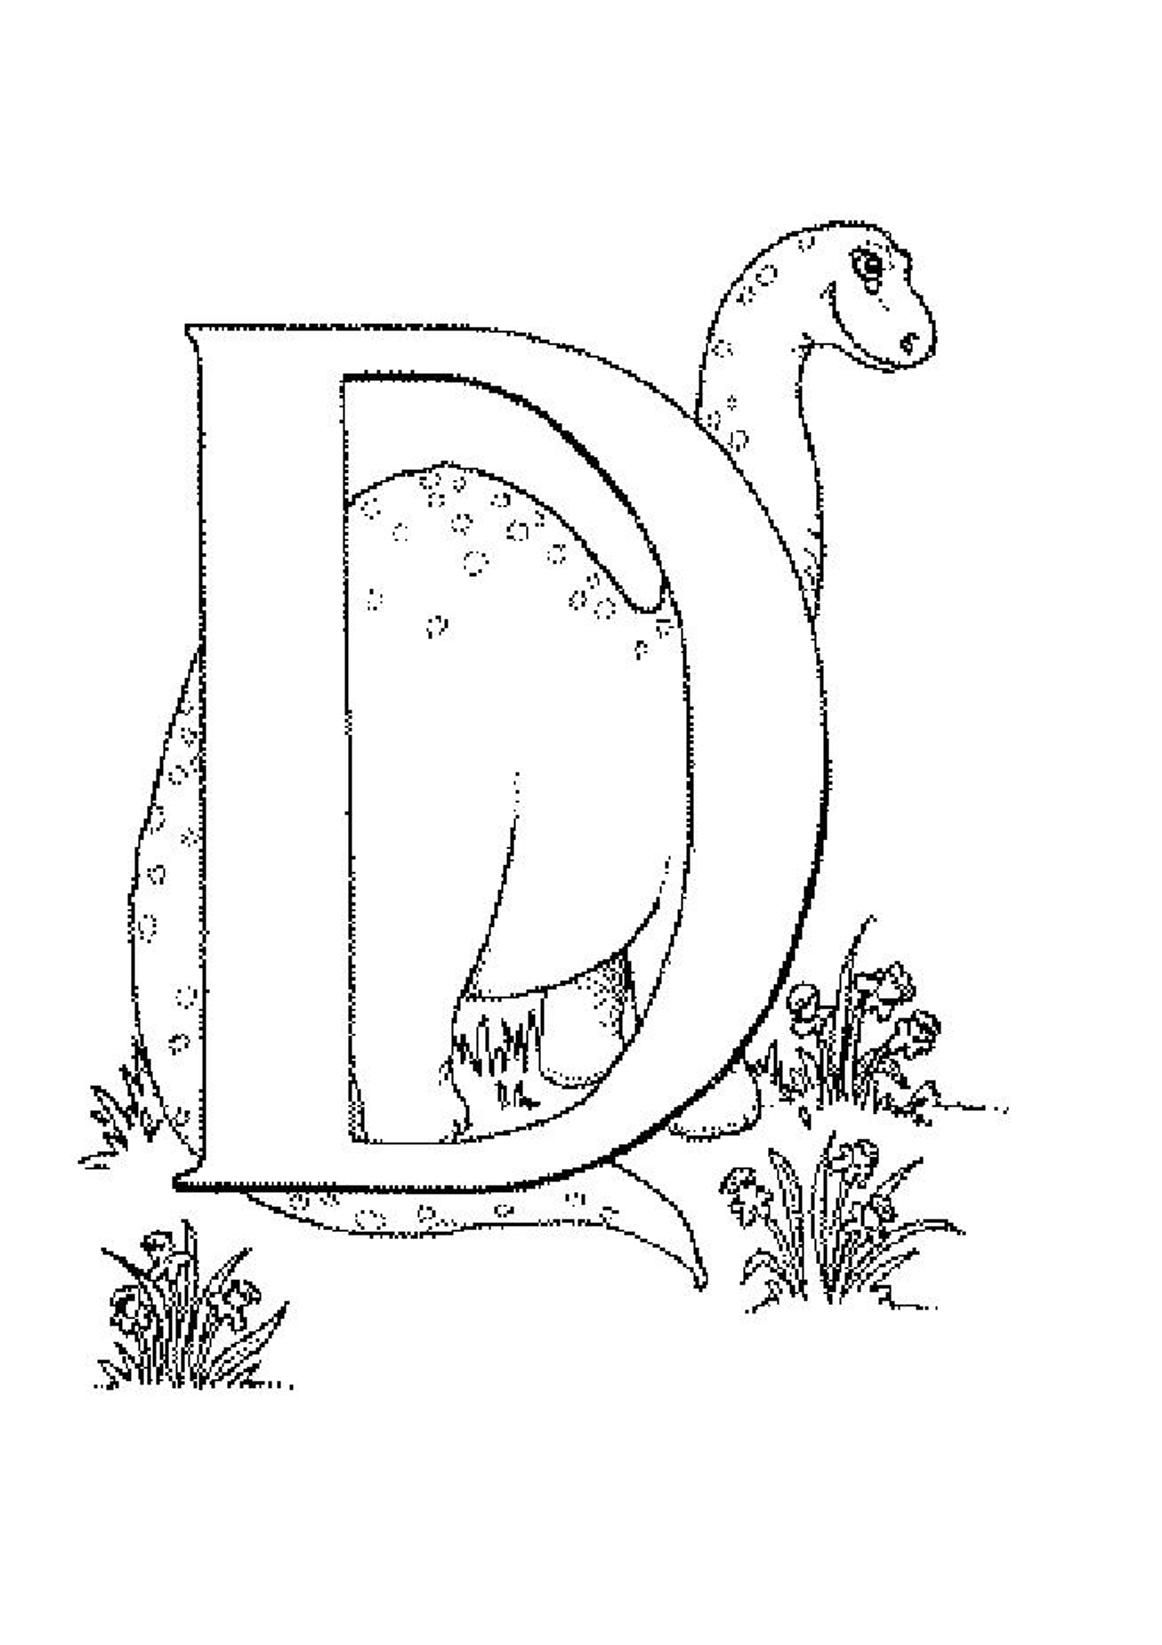 Printable Alphabet Coloring Pages D For Dino  Kids  Colouring